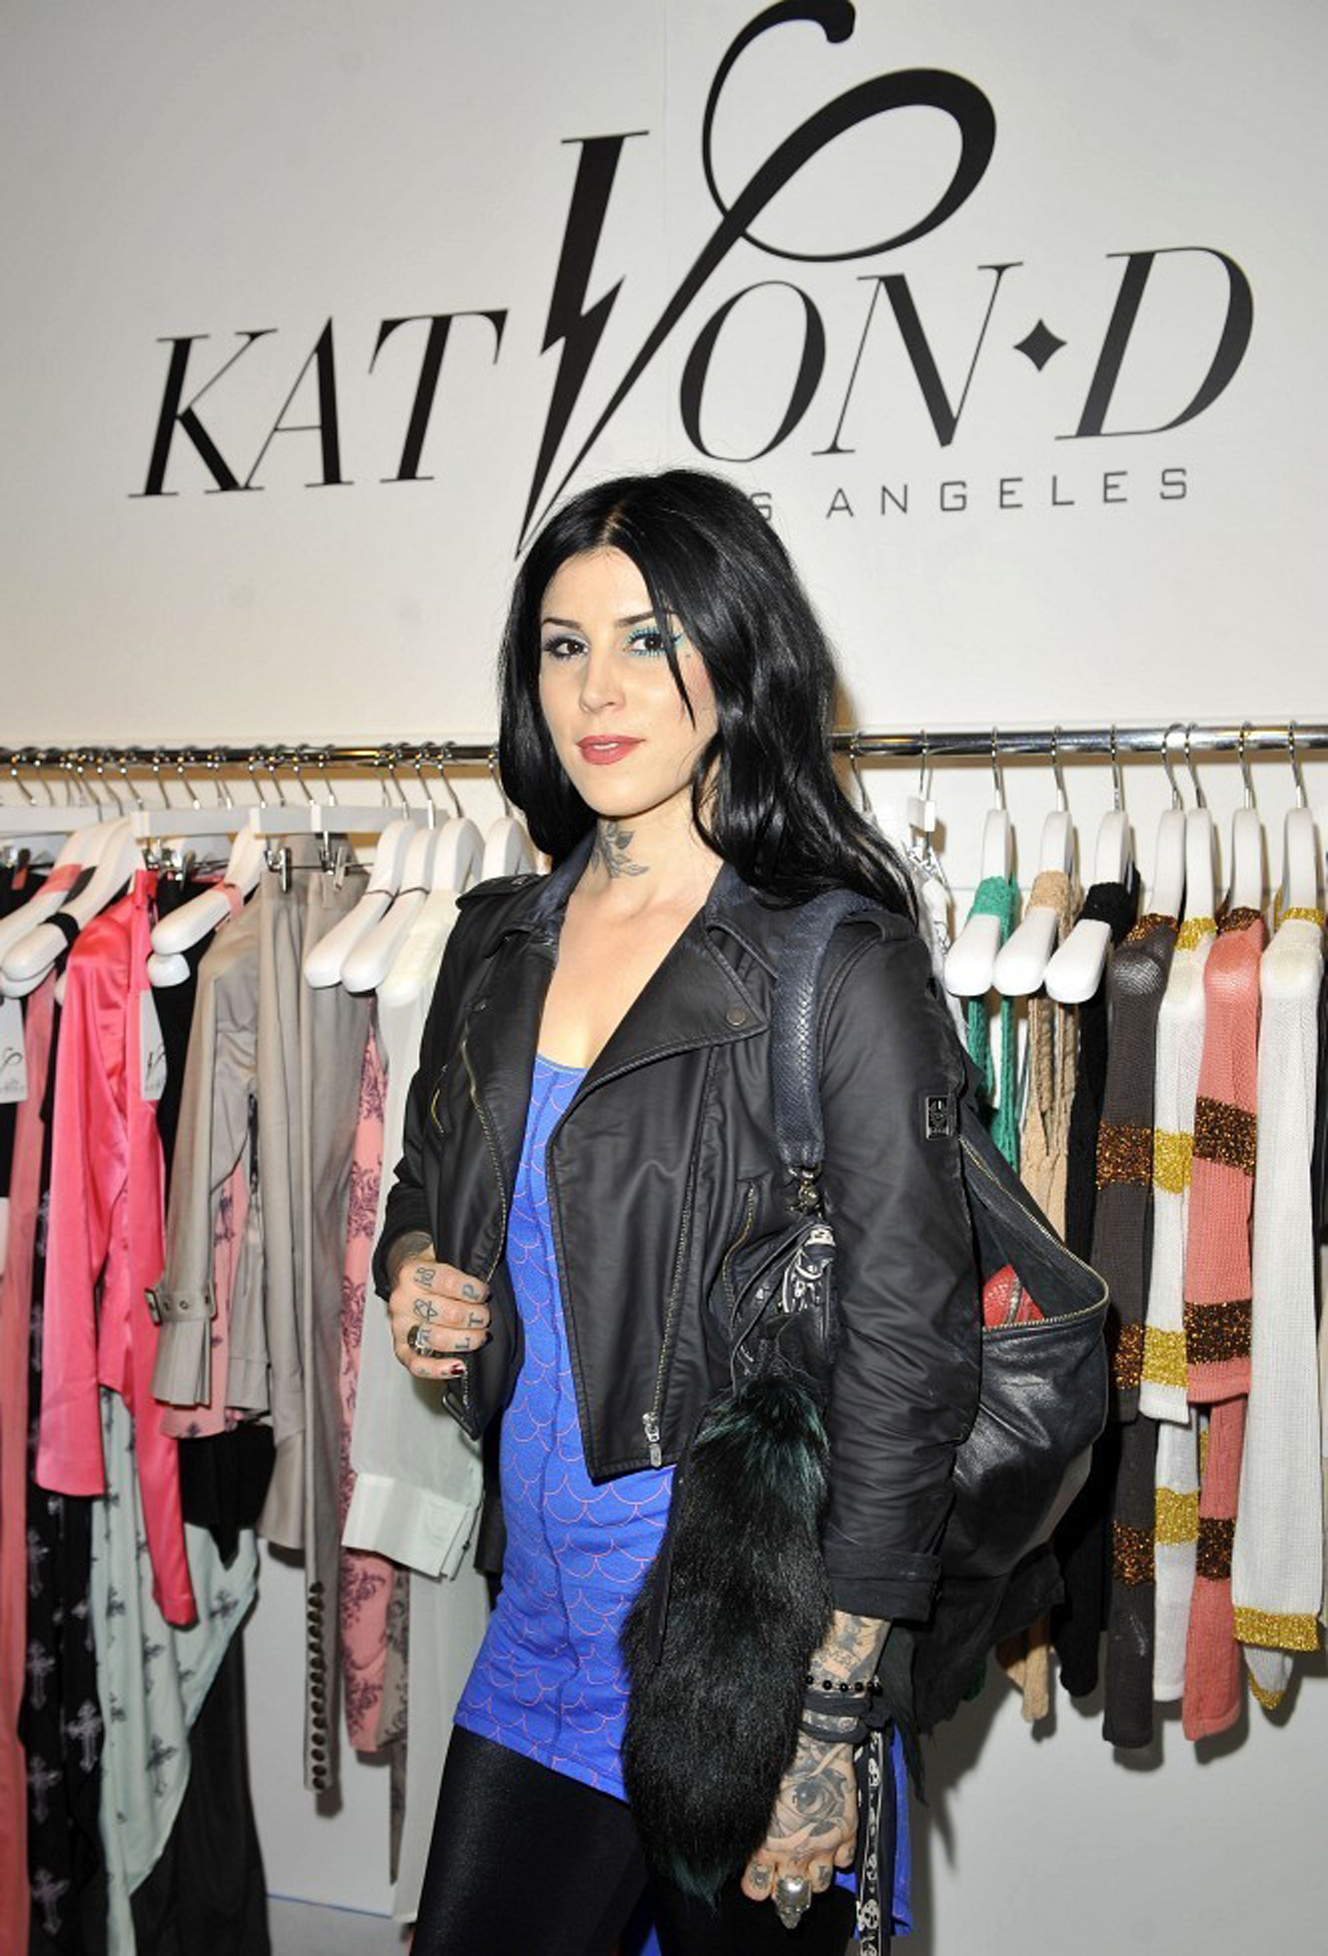 reveals her new fashion design collection in Londres